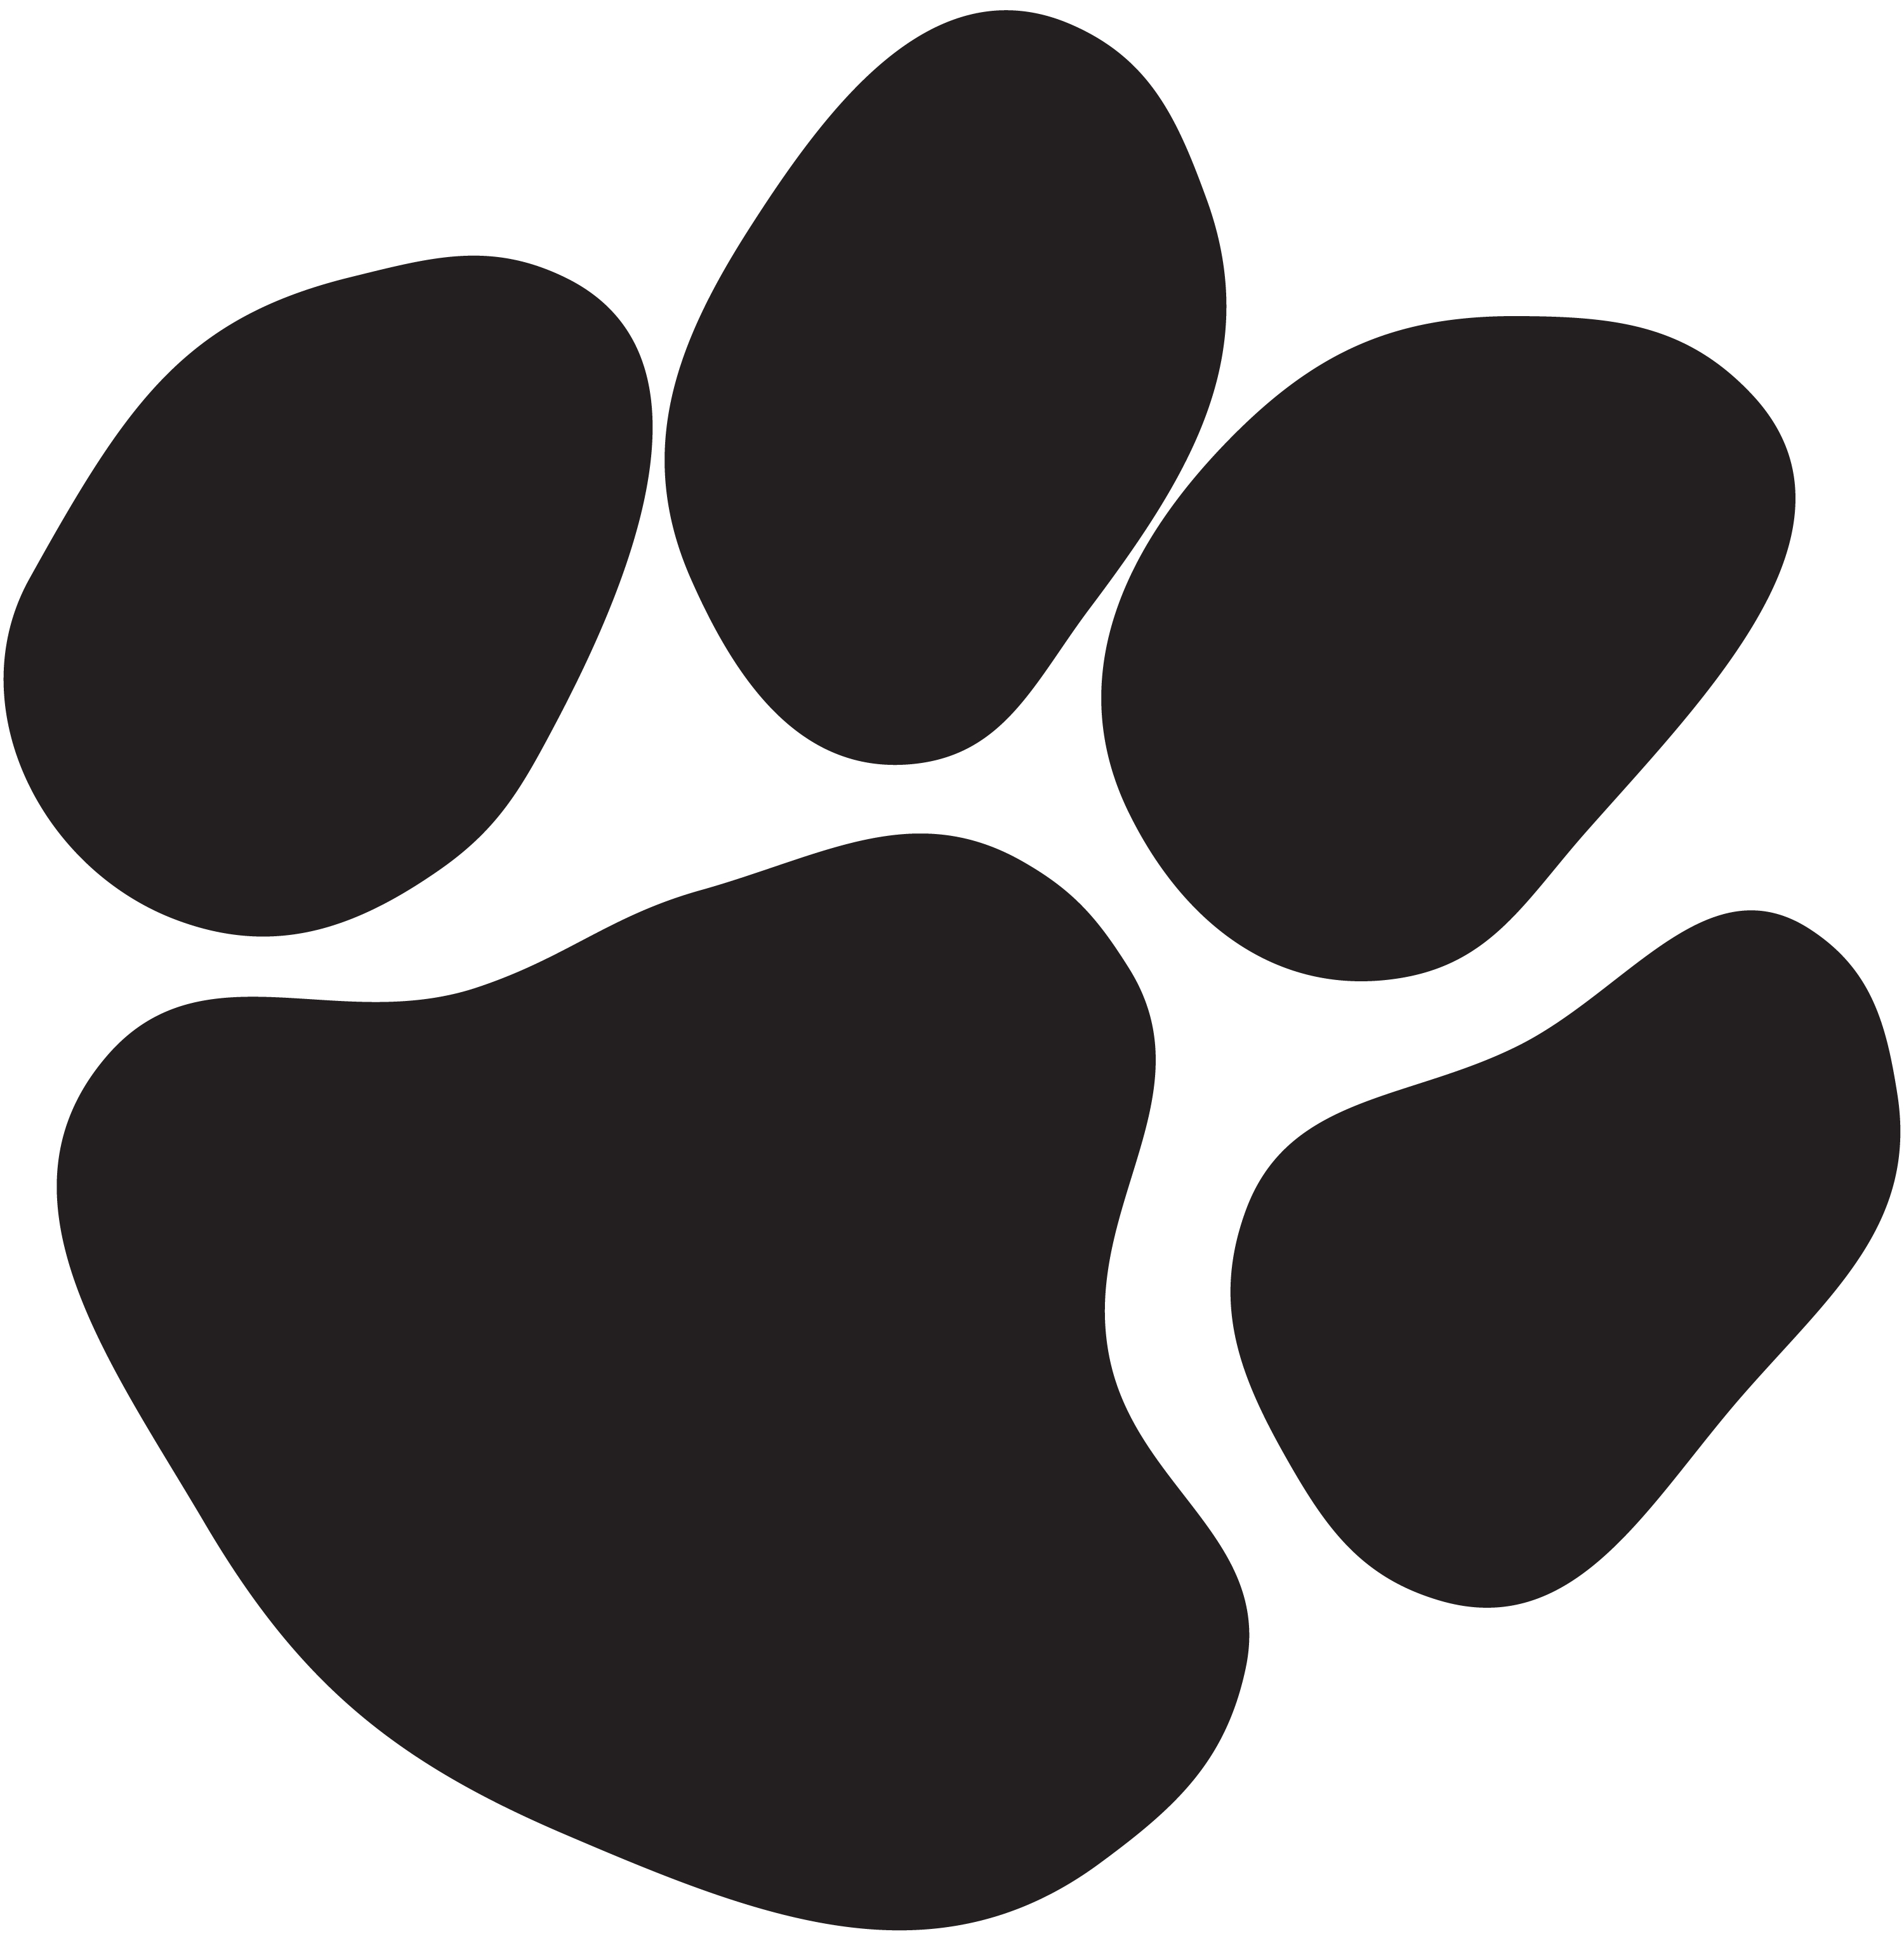 Paw print clipart jpeg transparent library Cat Paw Print Black And White Clipart - Clipart Kid transparent library